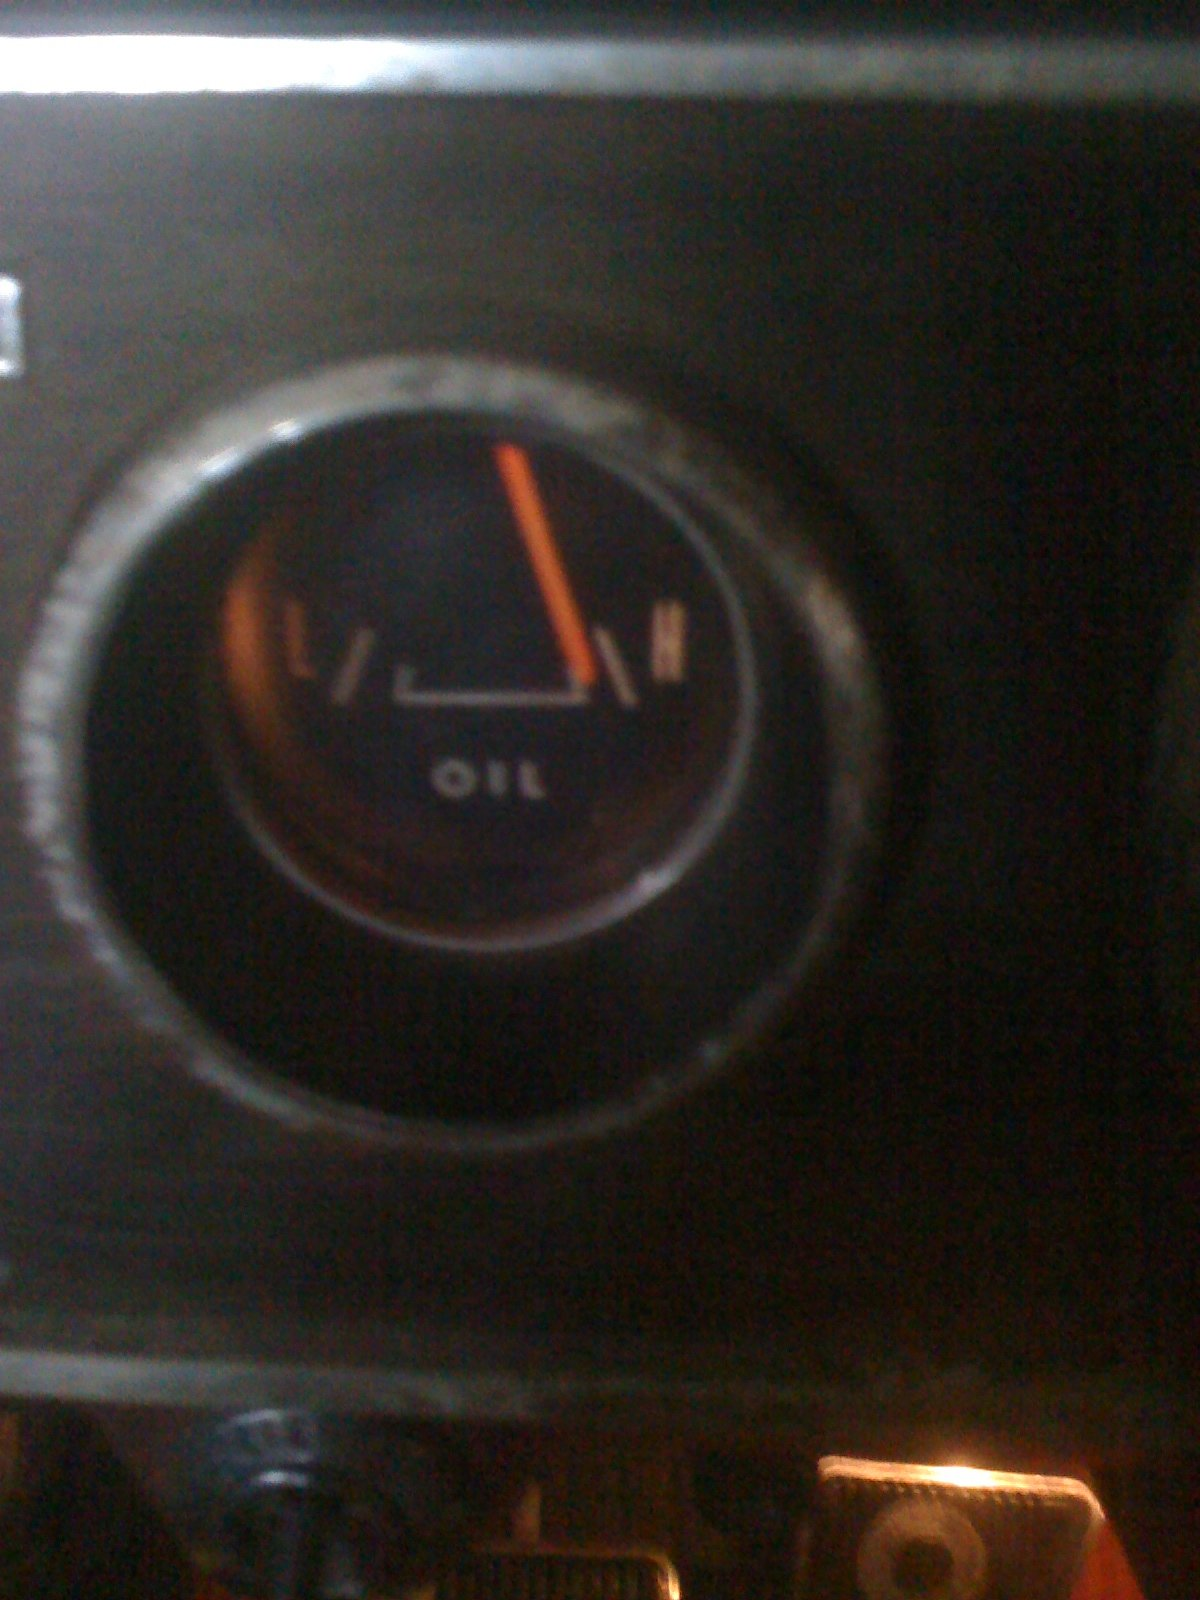 D Nissan Z Oil Pressure Light Psi Img moreover Maxresdefault besides Maxresdefault likewise Unplugging Unbolting Alternator Leads likewise D Rs Sc And Oil Pressure Indicator Failure Img. on oil pressure sending unit location